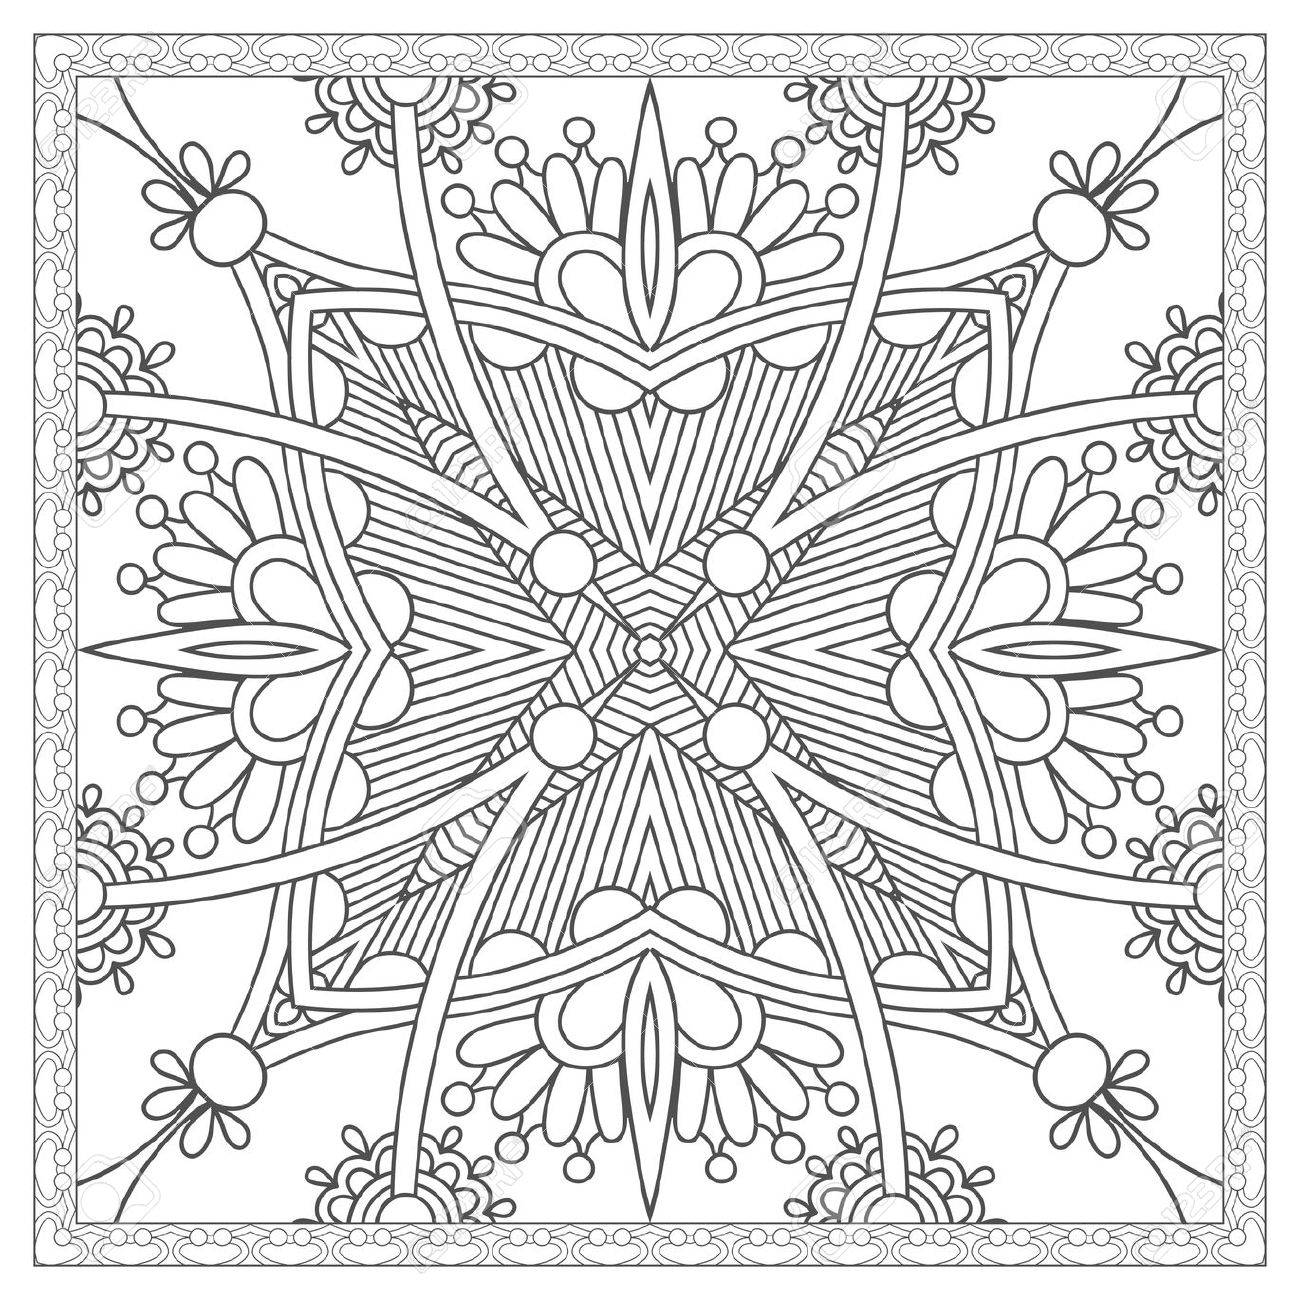 unique coloring book square page for adults - ethnic floral carpet..